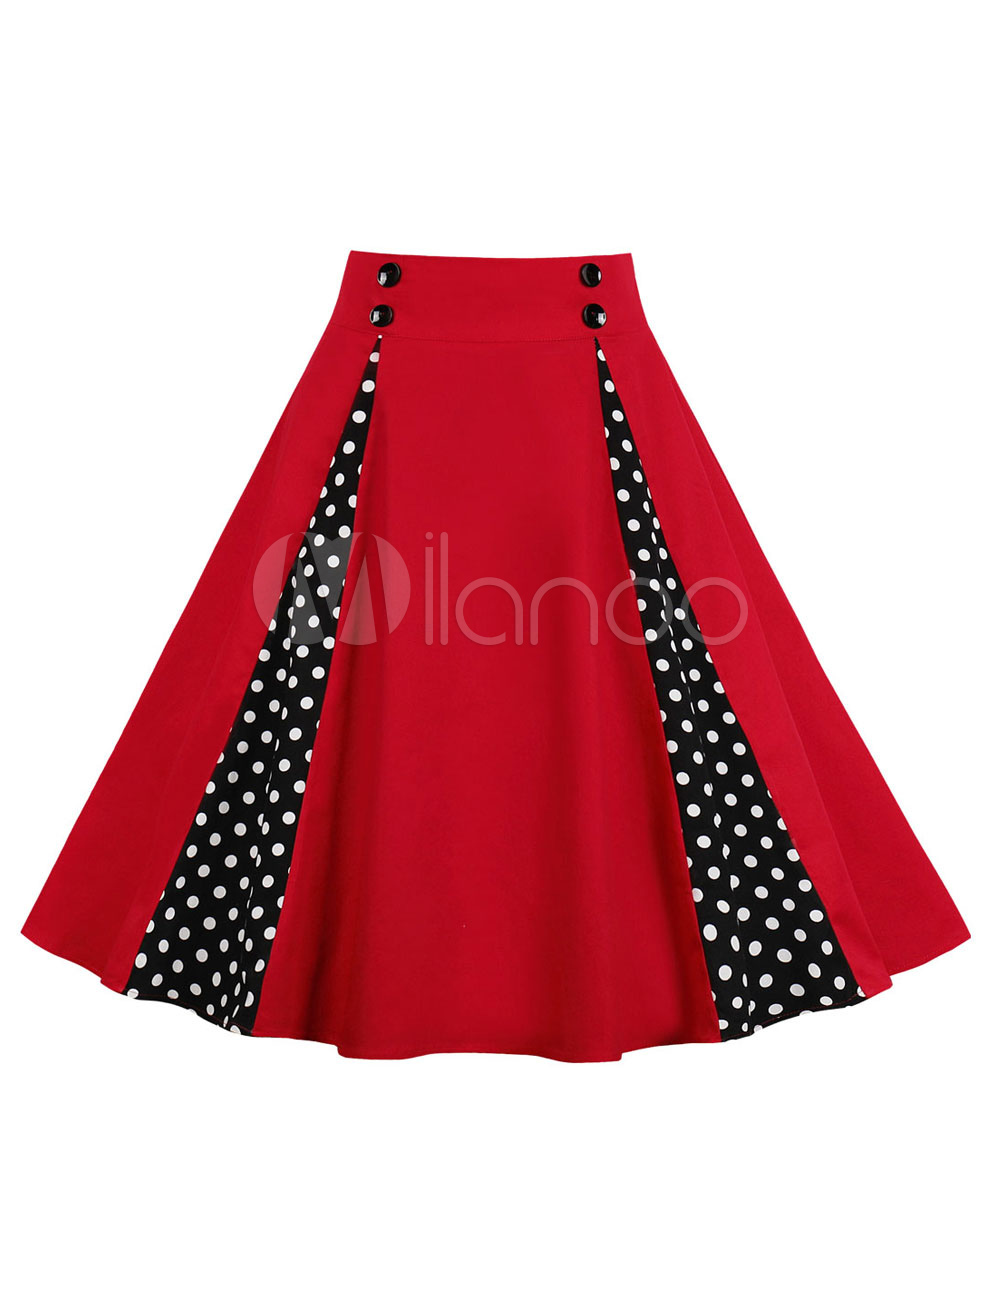 f2ae7f4e873 Vintage Swing Skirt 1950s Red High Waisted Buttons Polka Dot Cotton Summer  Skirt-No. 1. 35%OFF. Color Red